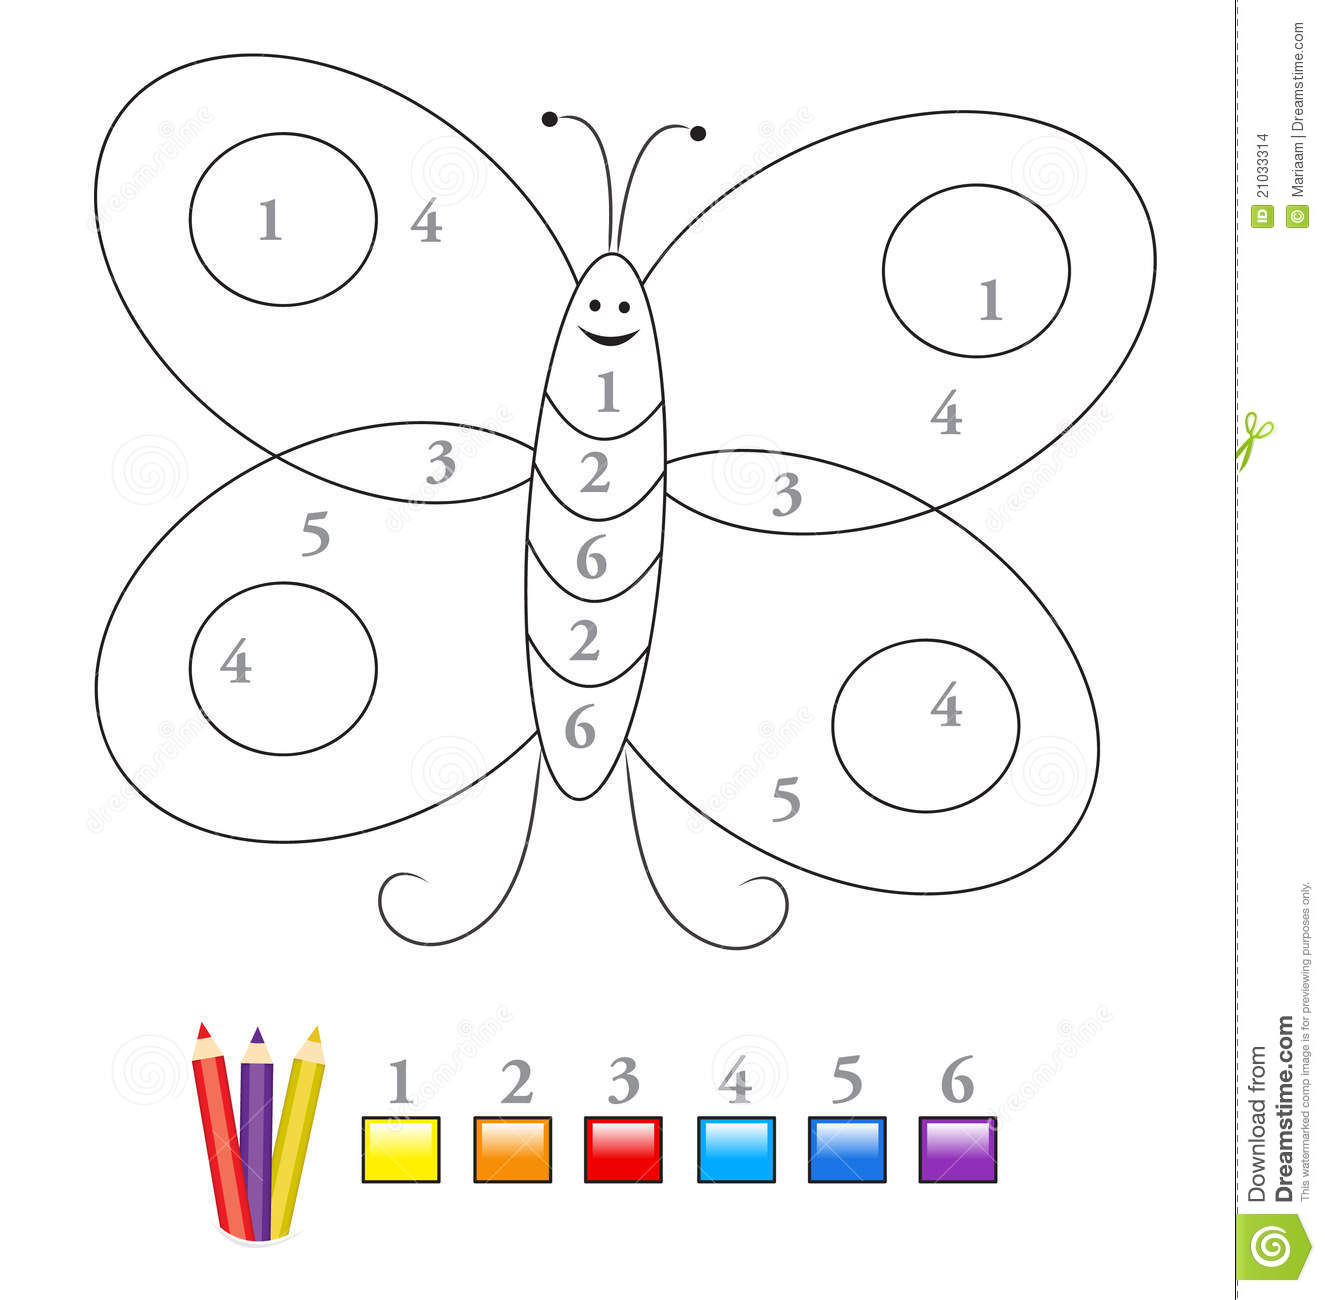 color by number game butterfly stock vector image 21033314. Black Bedroom Furniture Sets. Home Design Ideas